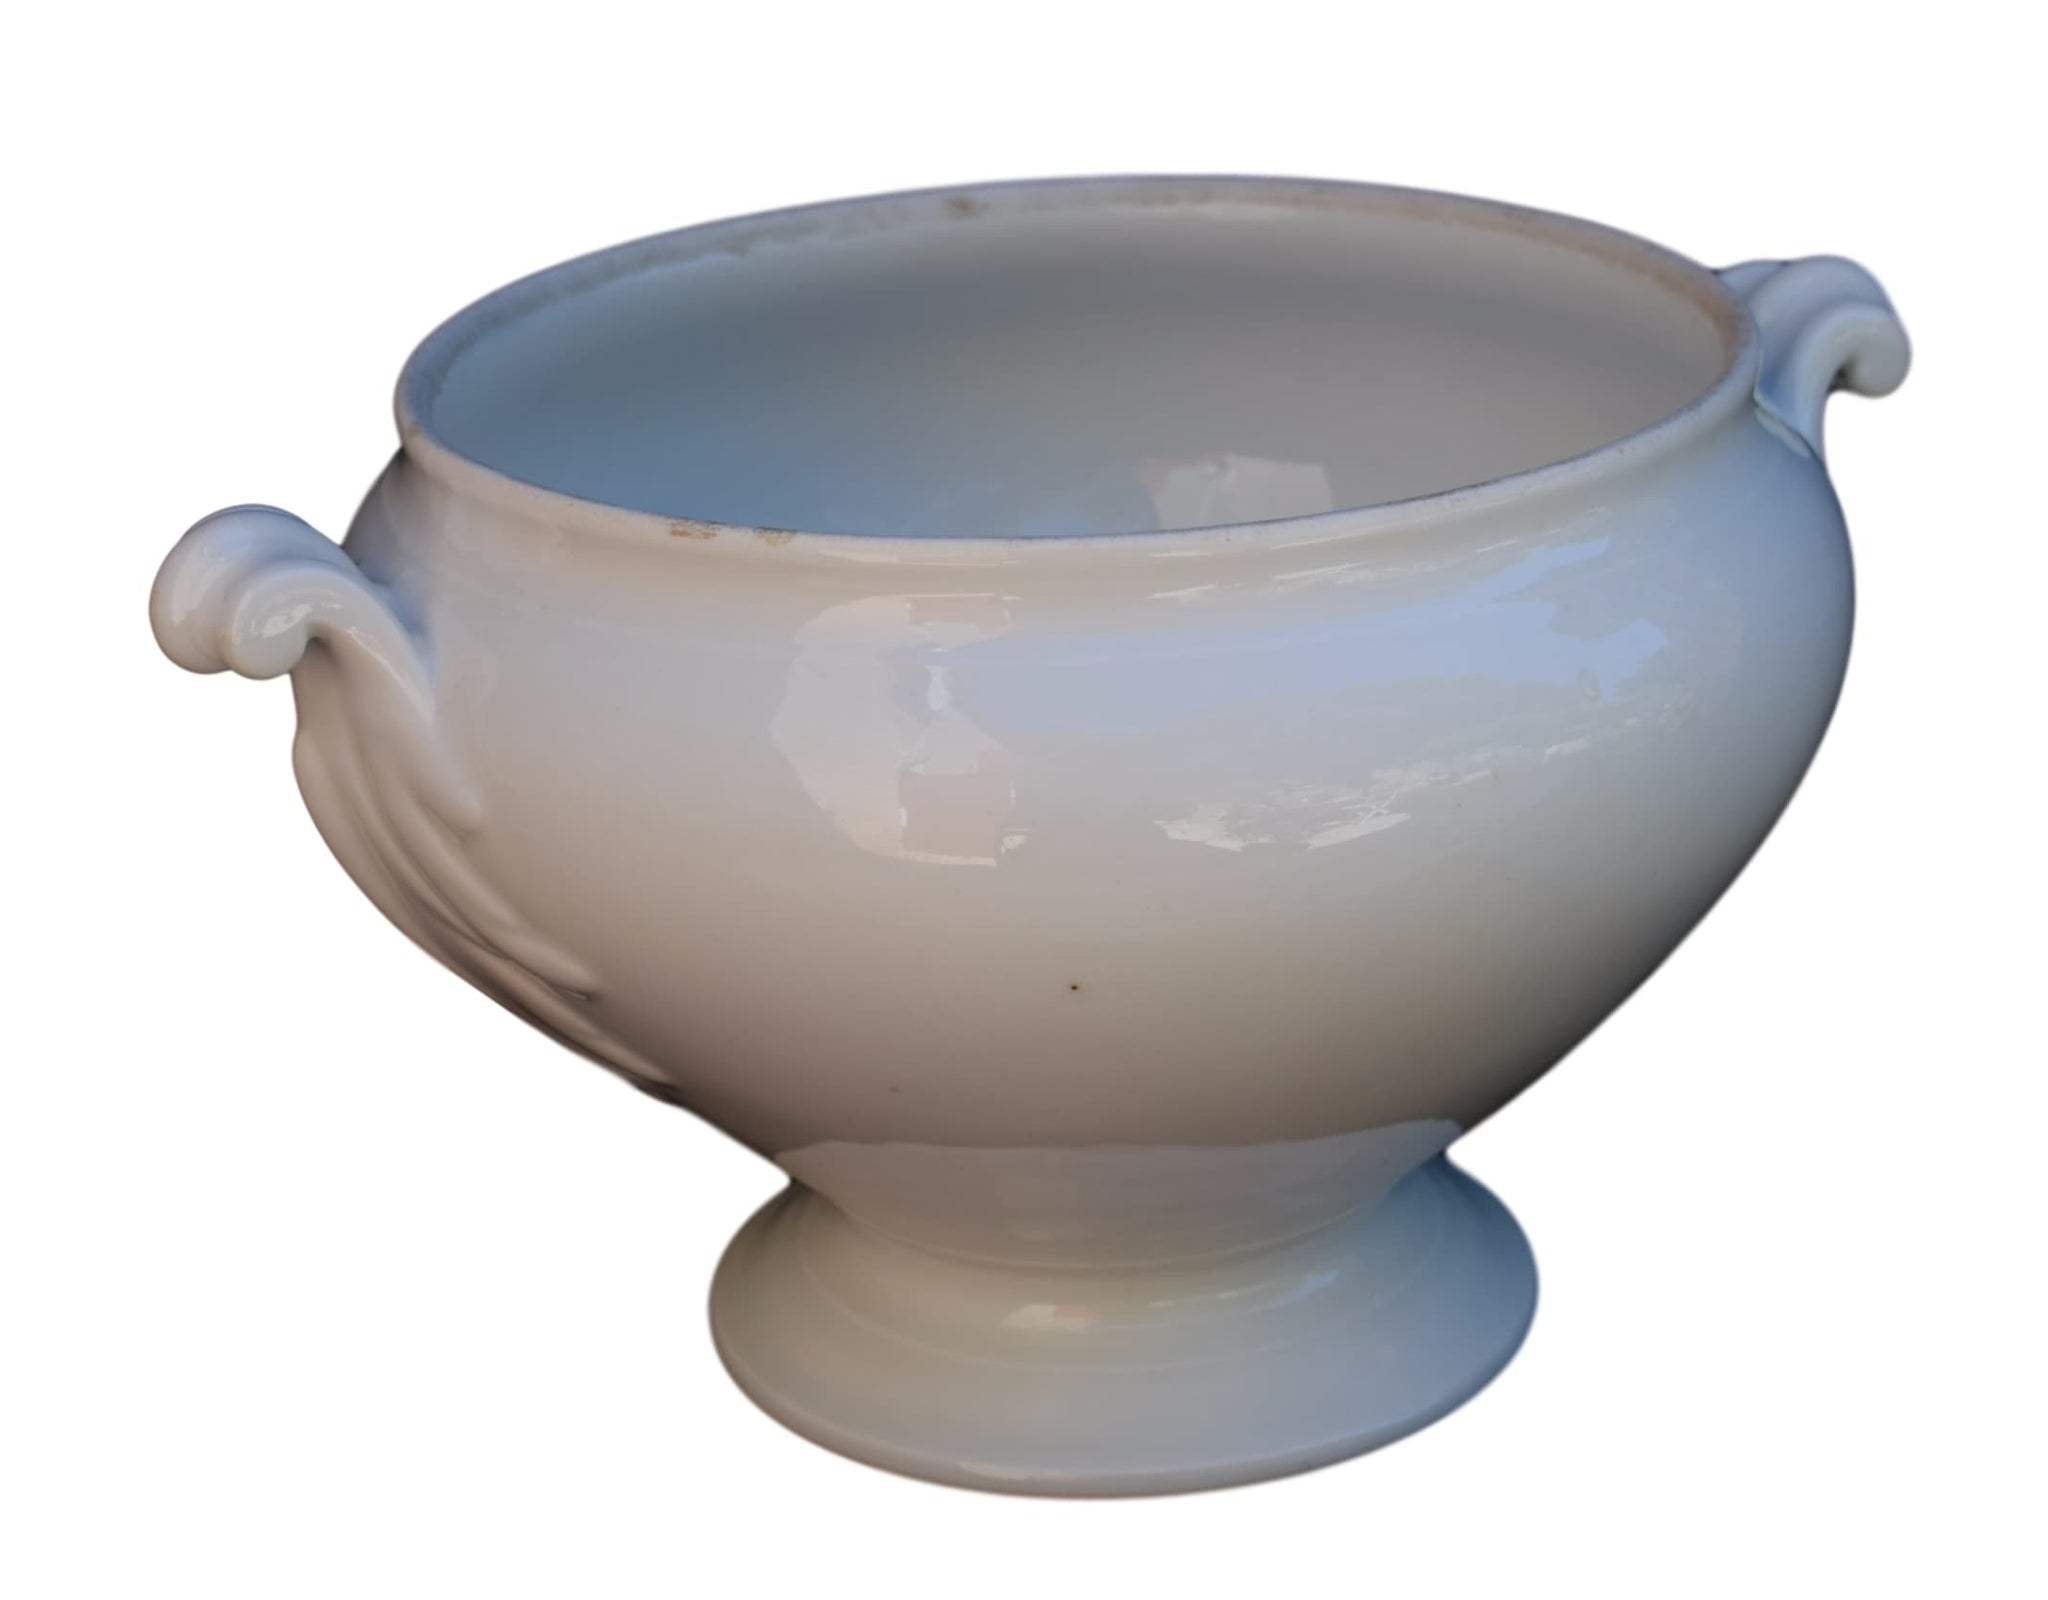 White Ironstone Tureen Vase - Charmantiques